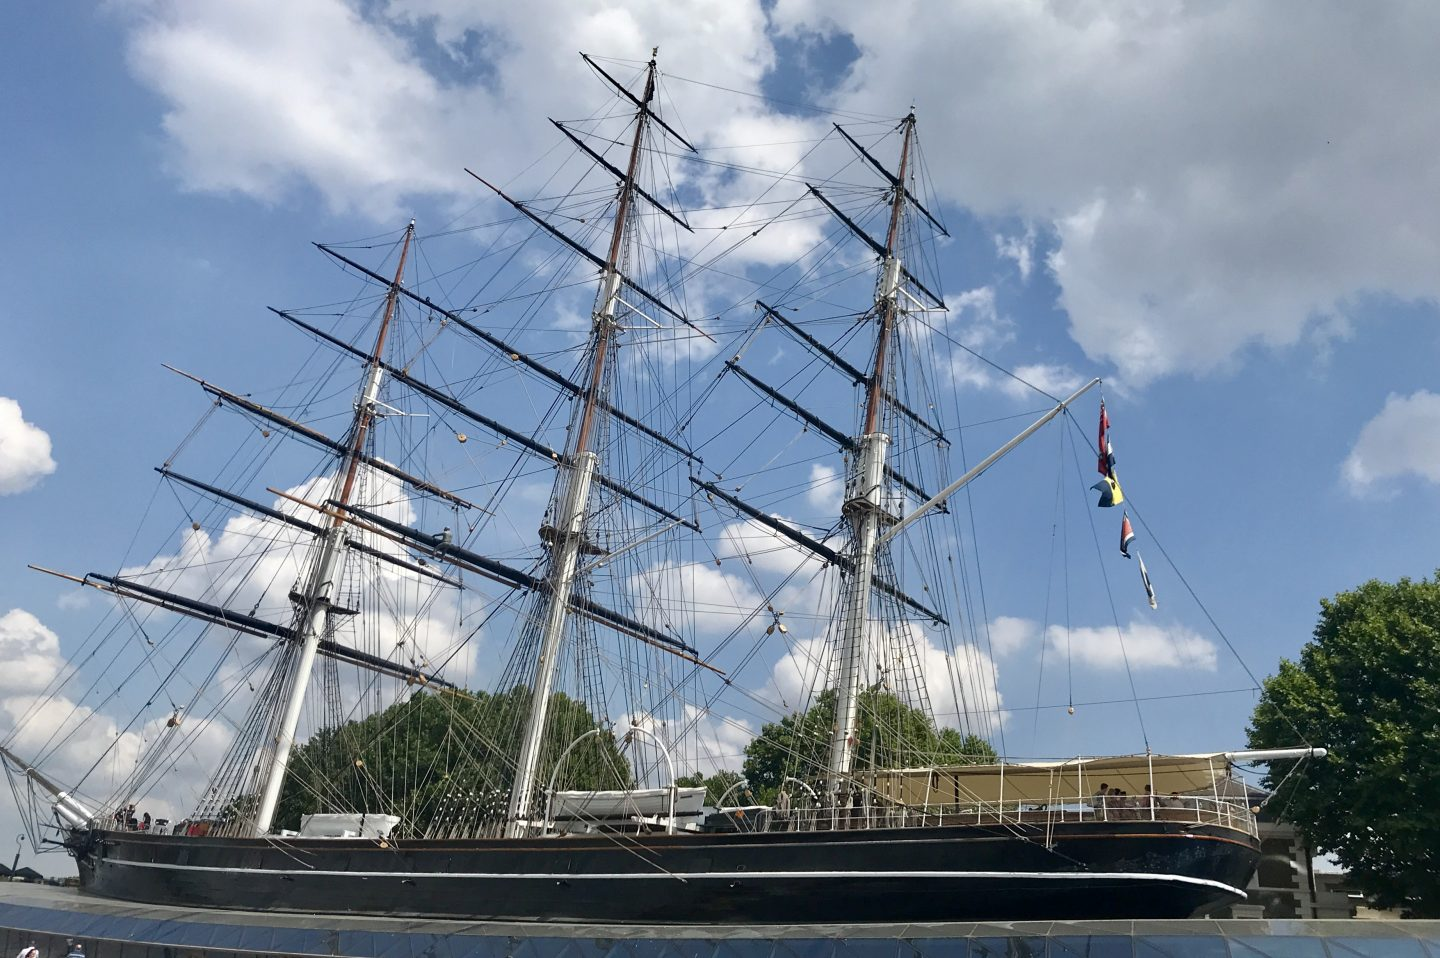 Girls' Day Out in Greenwich & The Cutty Sark